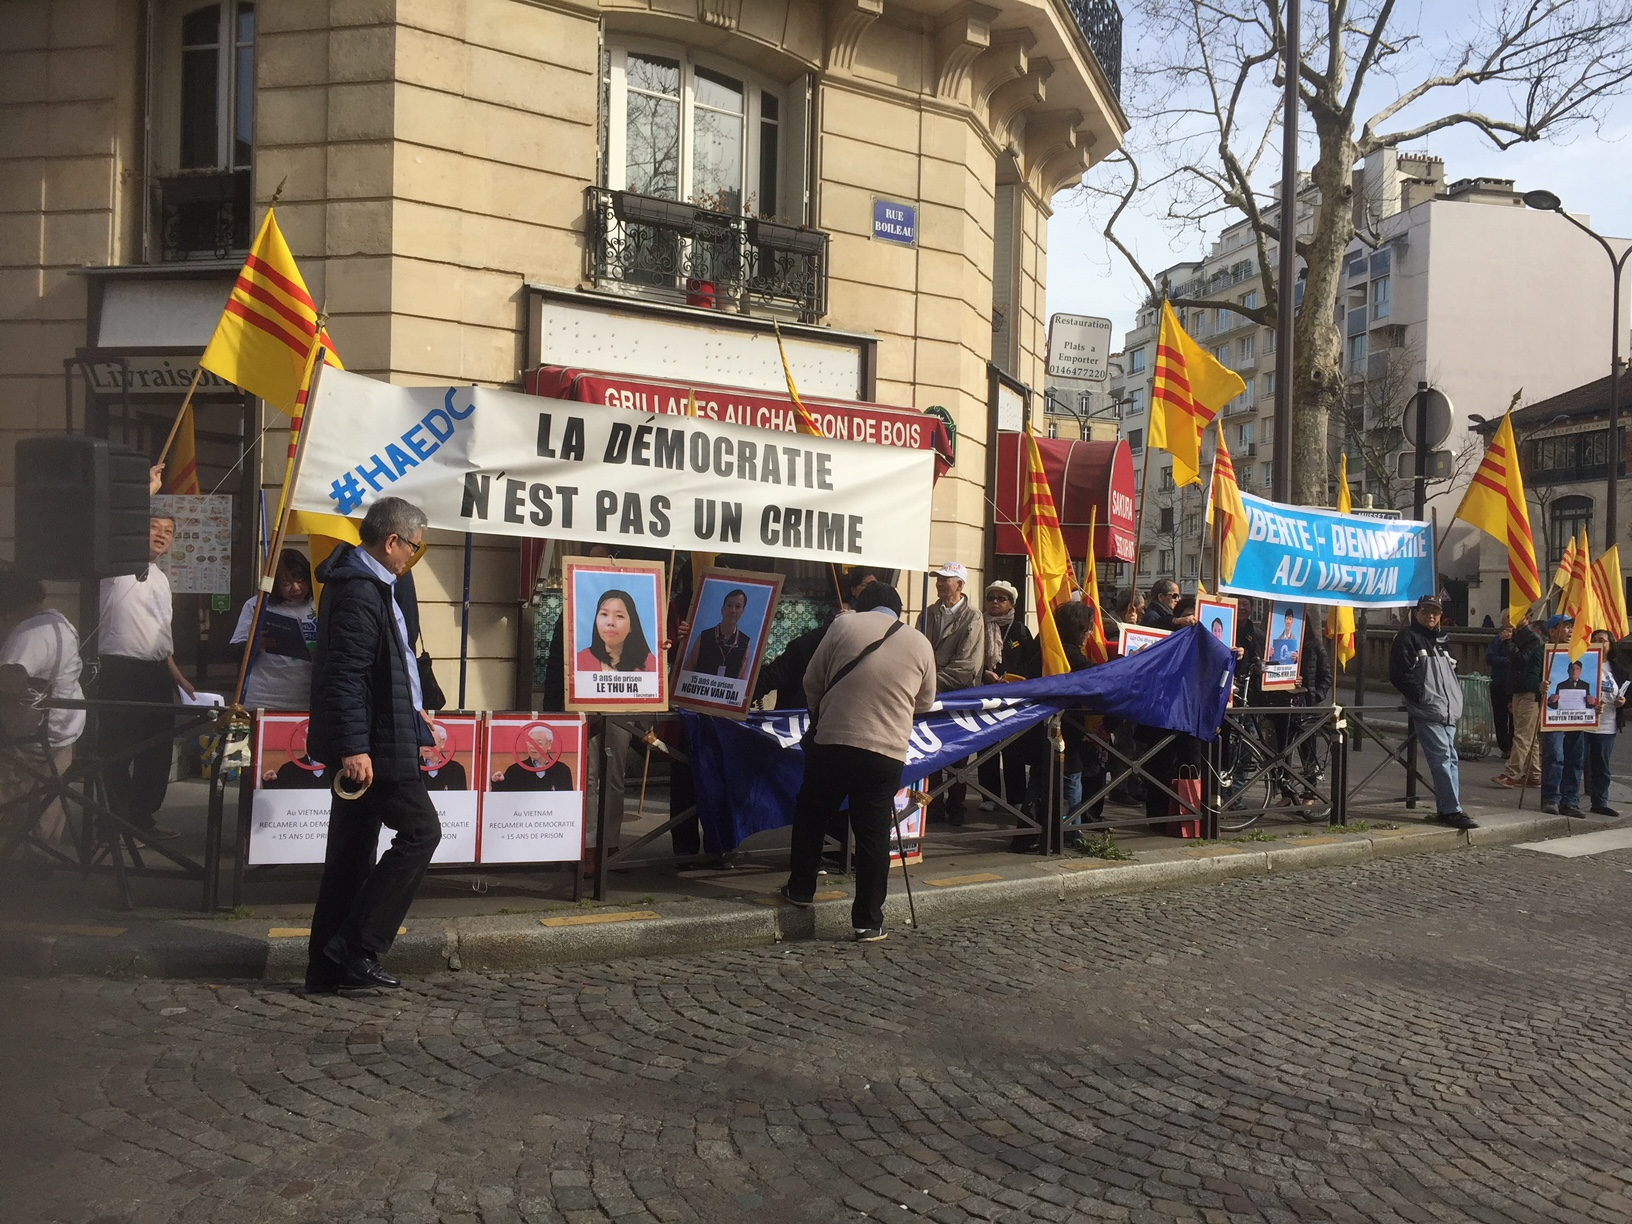 Manifestation devant l'ambassade du Vietnam à Paris, photo CBO, Asie21